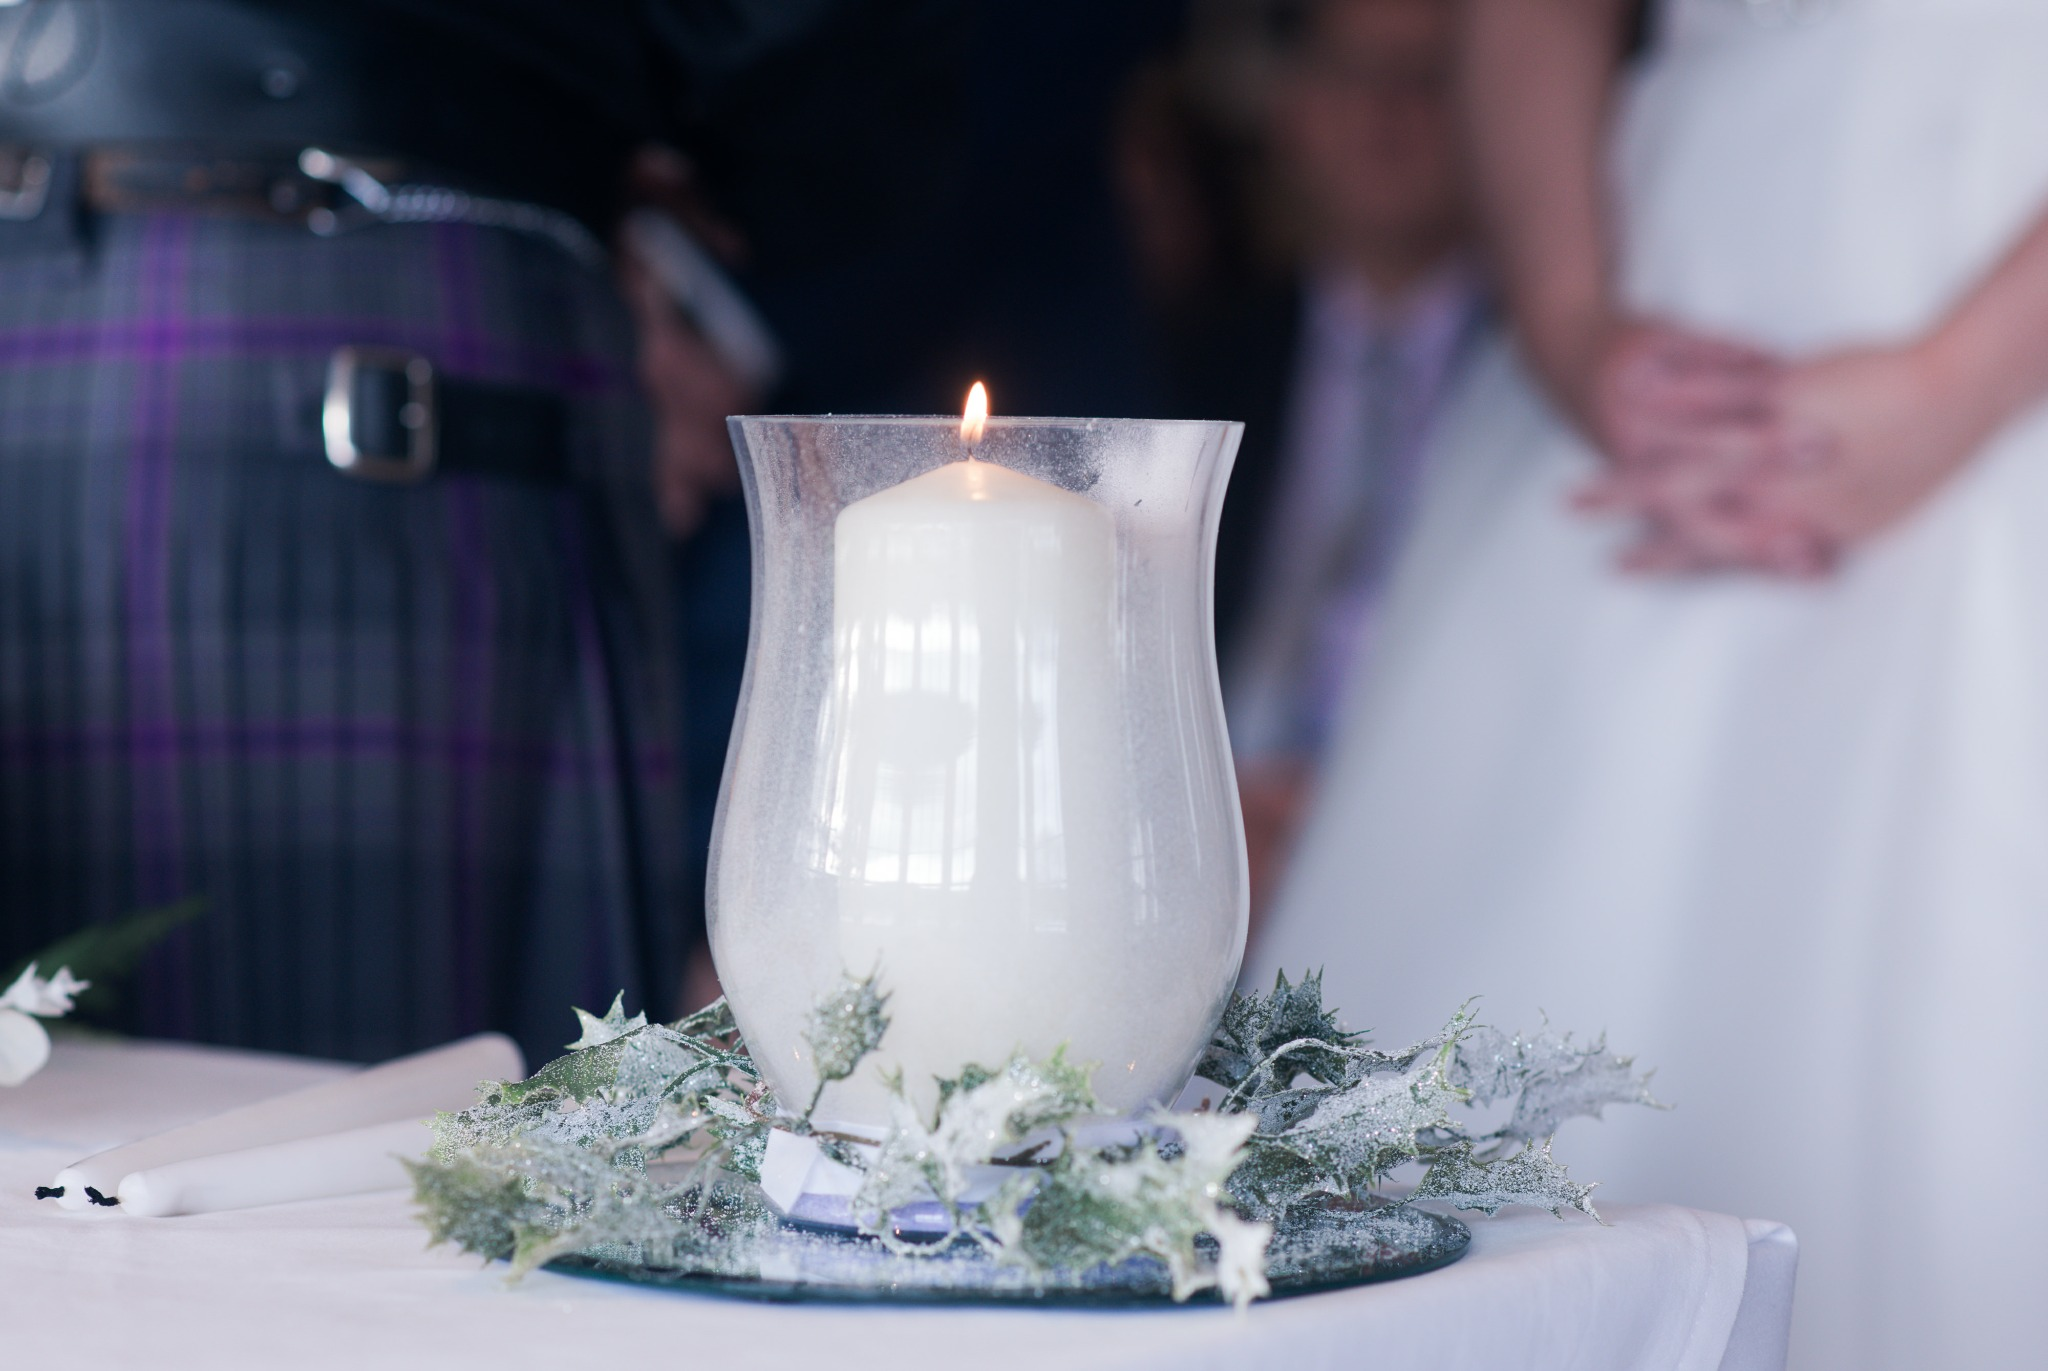 A Scotish wedding with a white candle.